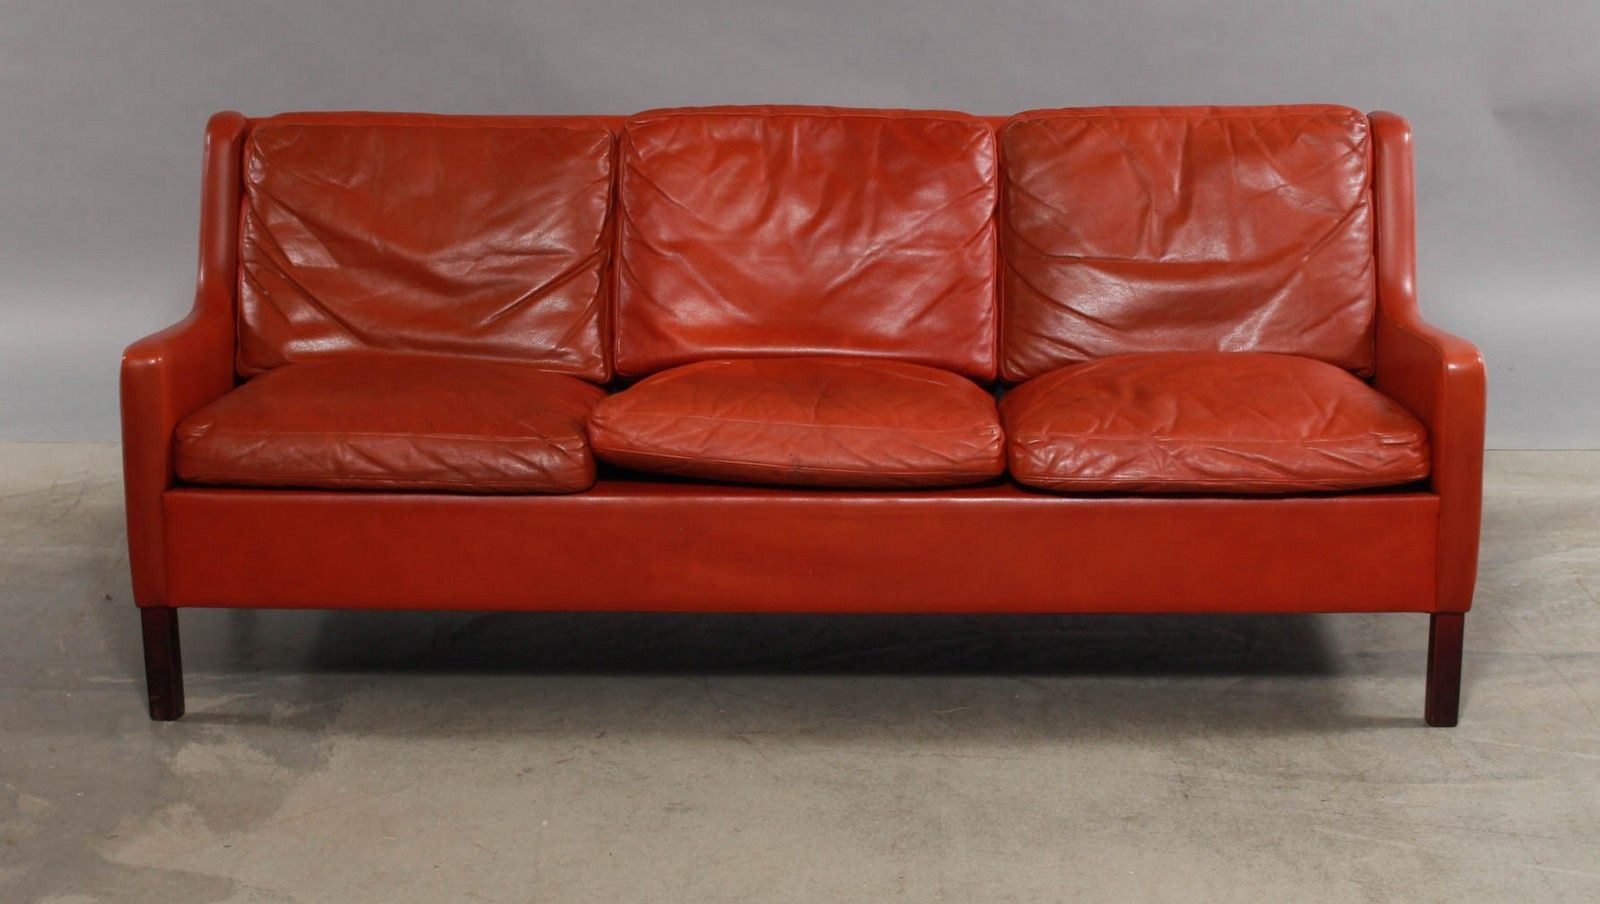 rotes skandinavisches vintage 3 sitzer ledersofa bei pamono kaufen. Black Bedroom Furniture Sets. Home Design Ideas